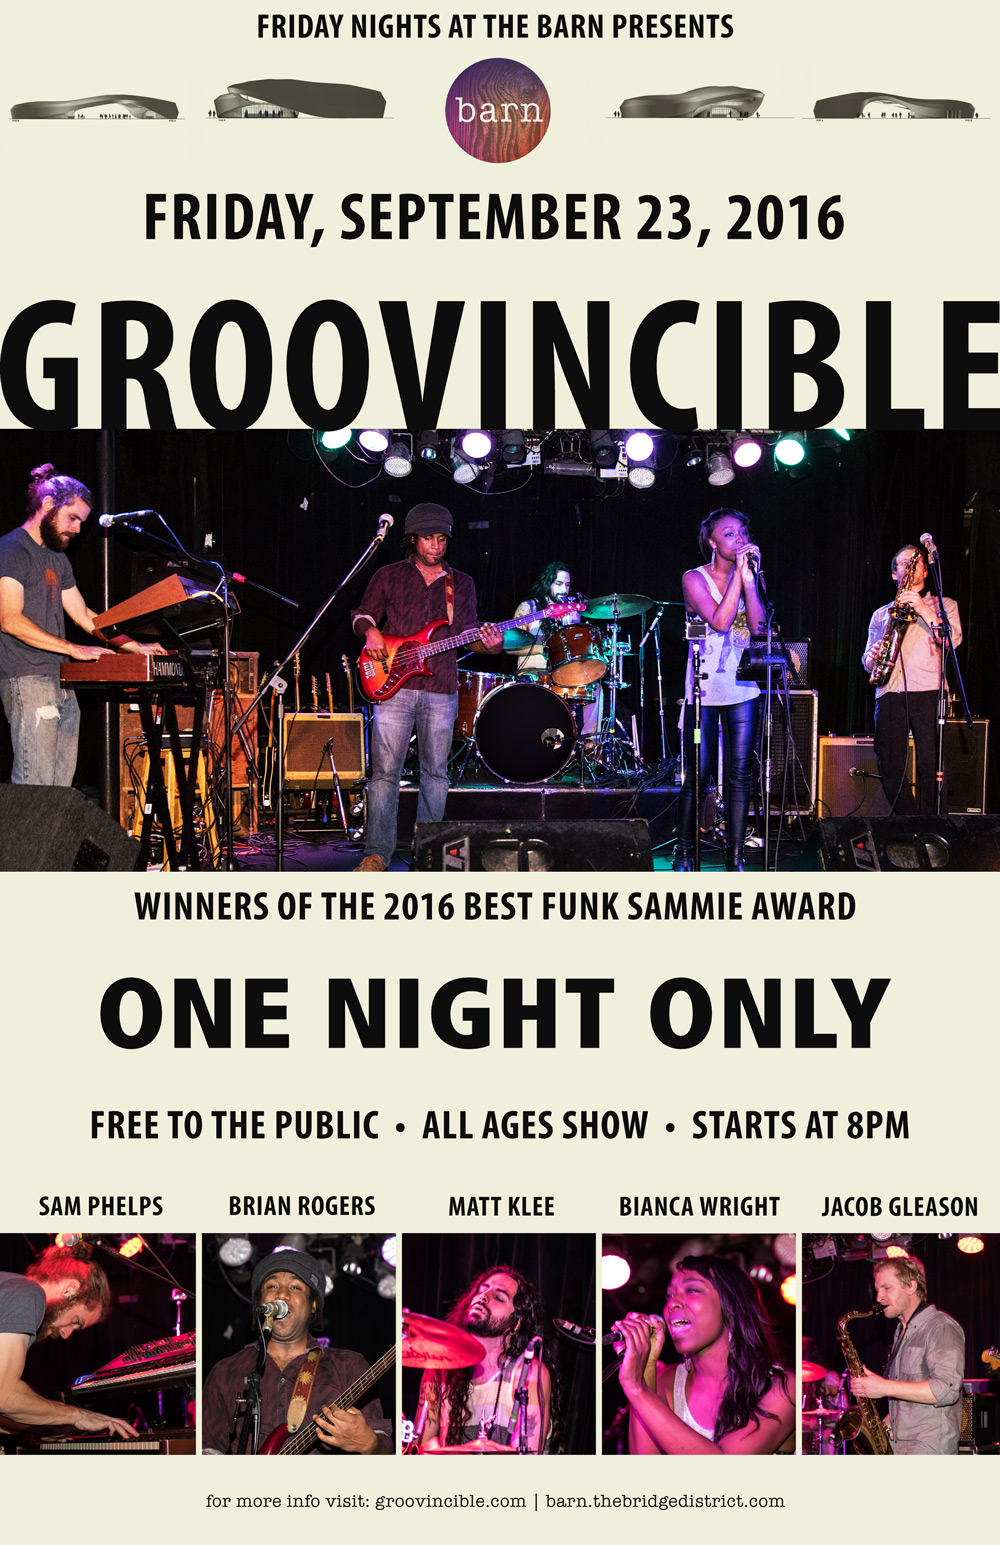 Groovincible-the-barn-1000wide